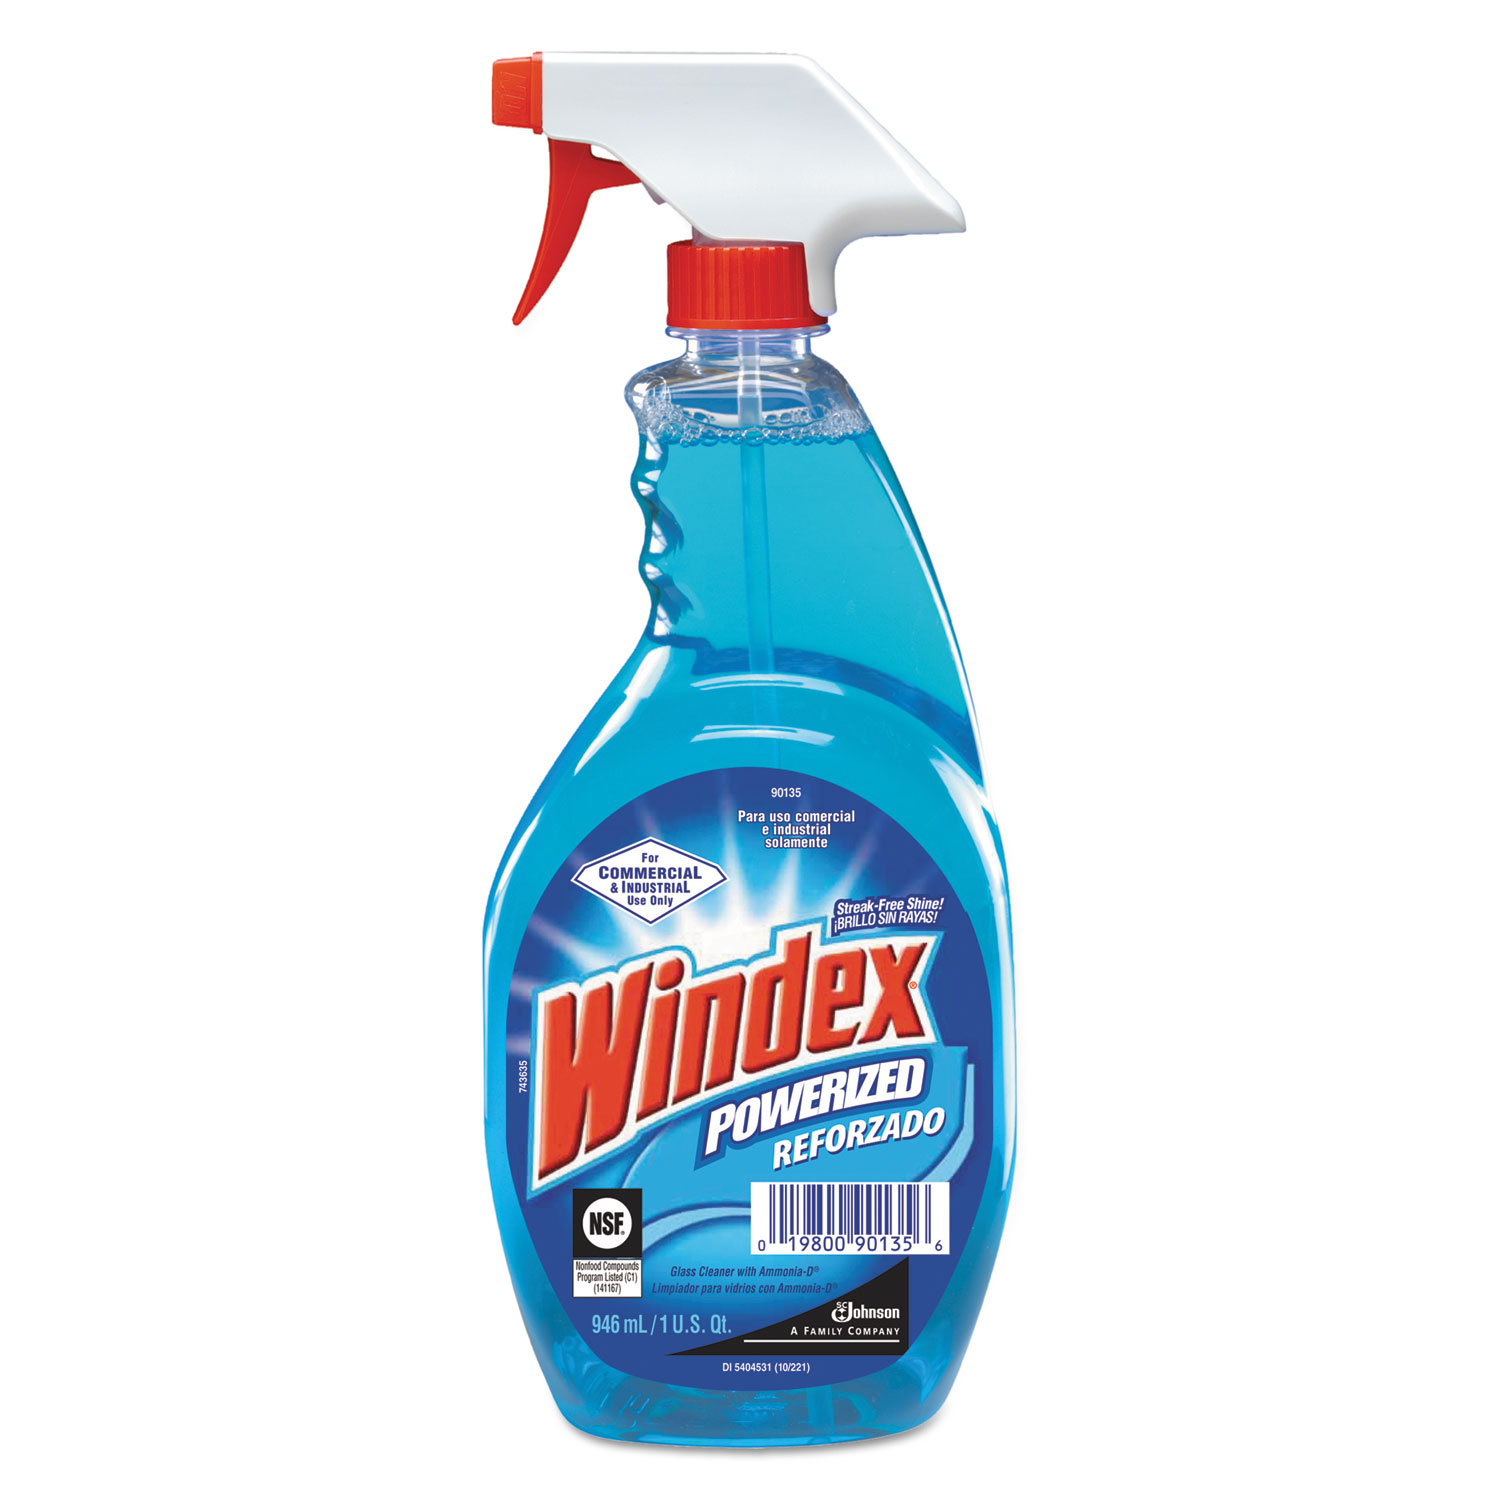 Windex Original Glass Cleaner With Ammonia D Msds 2017